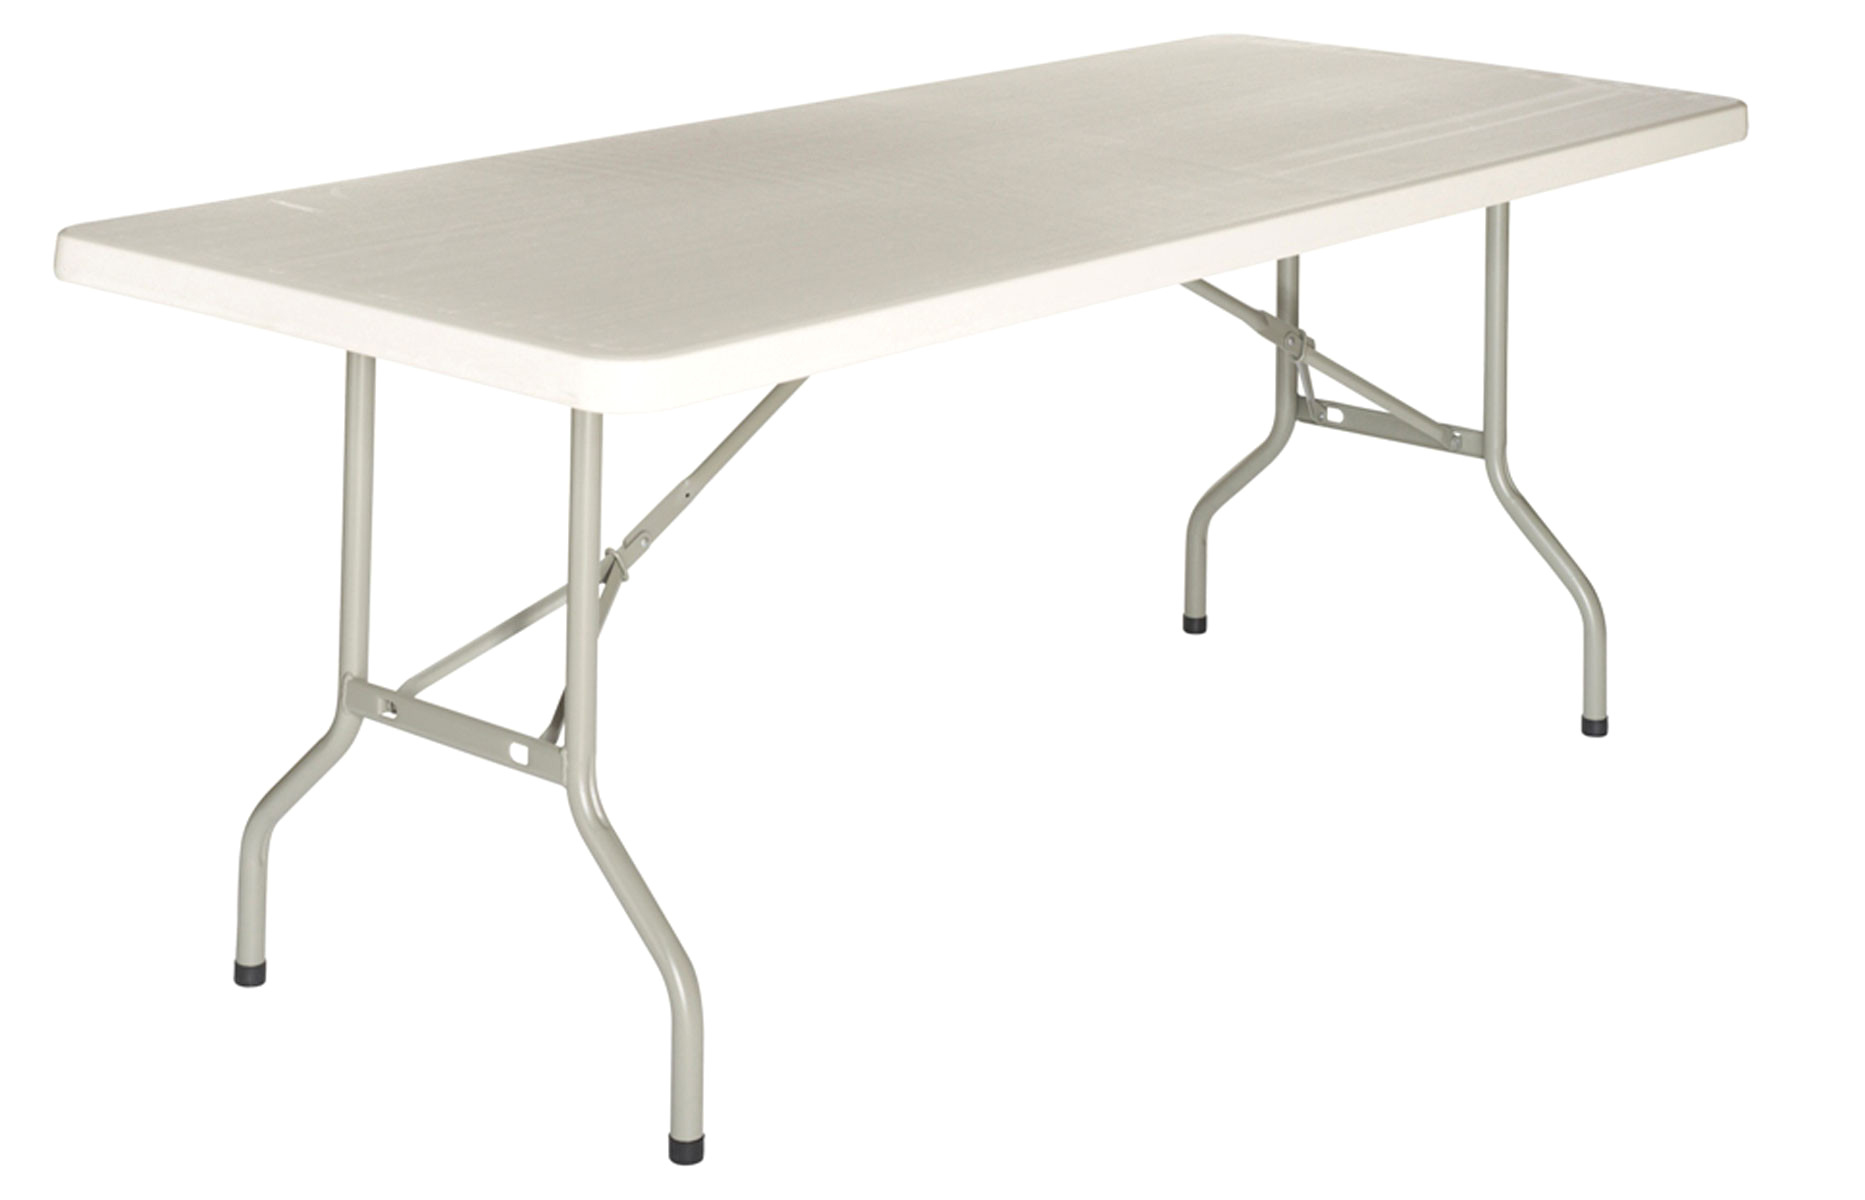 Table Pliante Valise Castorama Luxe Image Table Et Banc Pliant Awesome Small Outdoor Table and Chairs Ideal